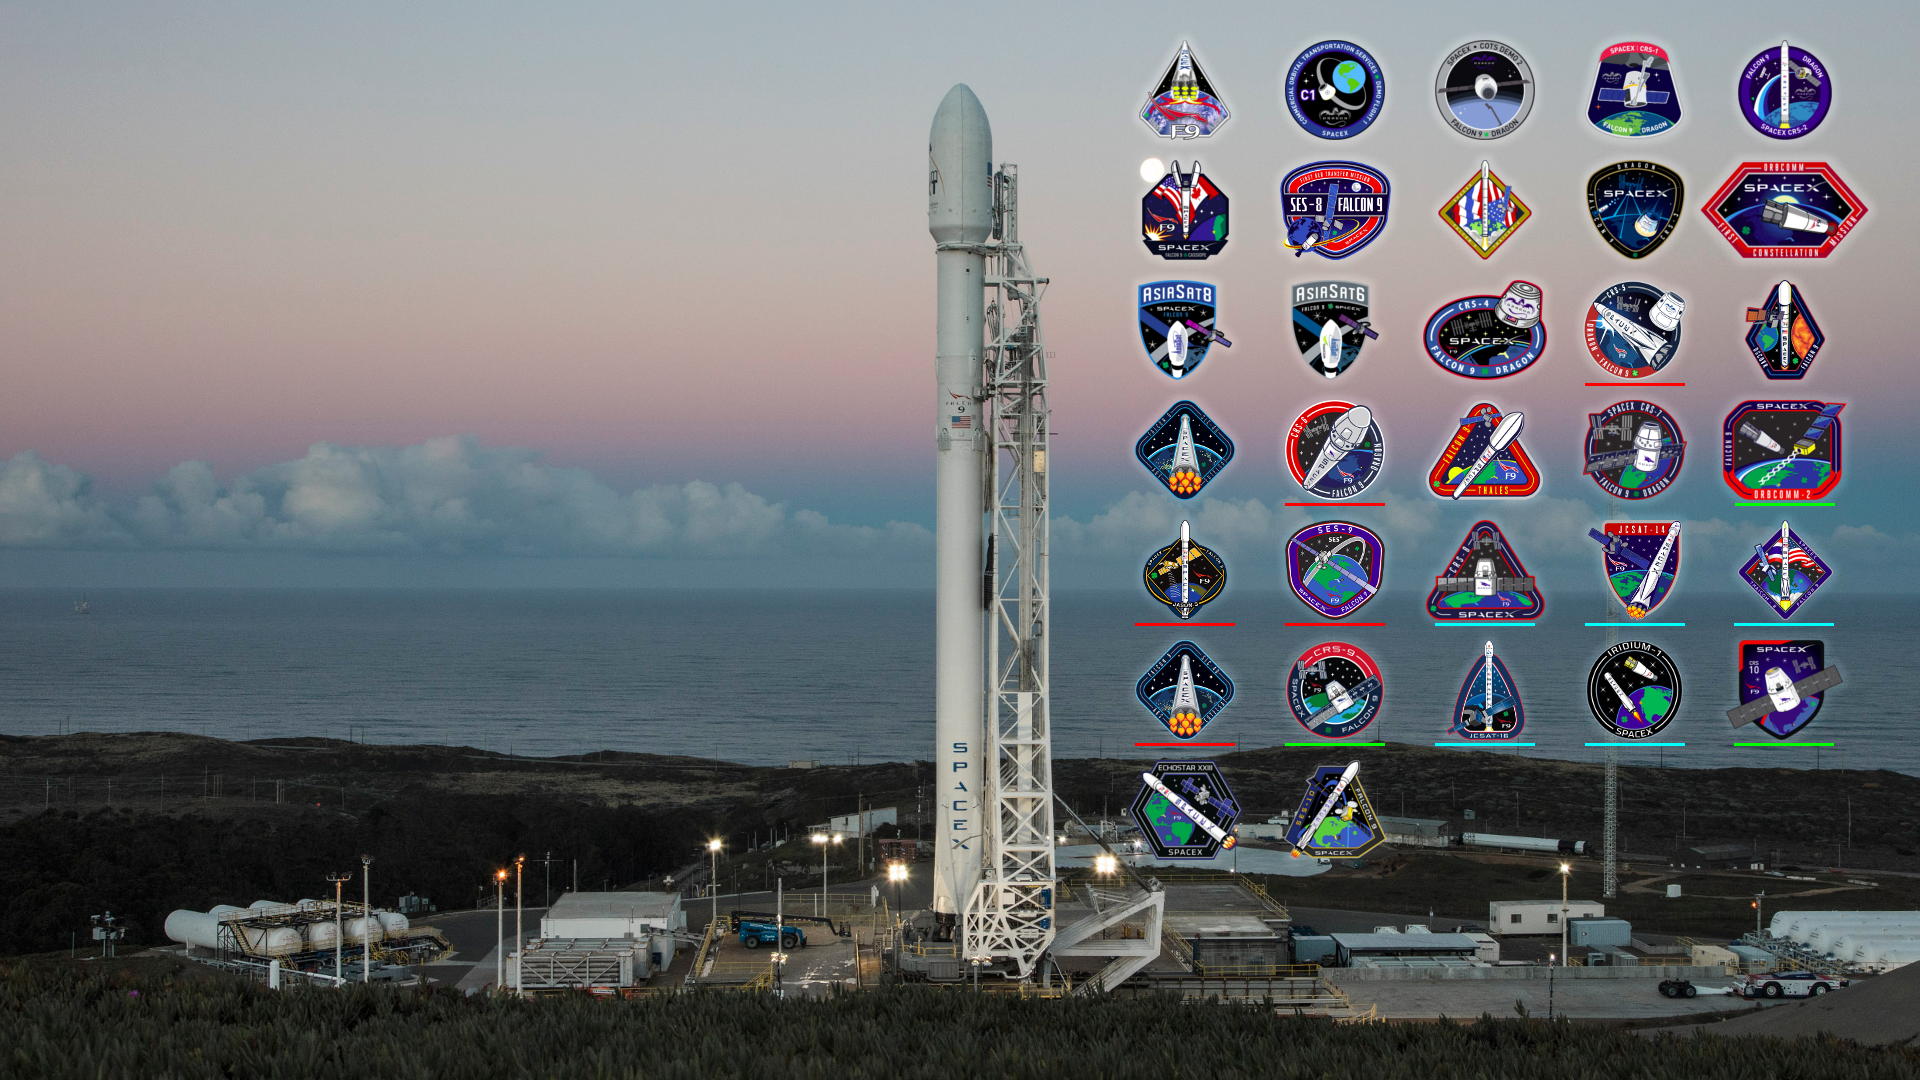 SpaceX background (1920x1080) Need iPhone 6S Plus